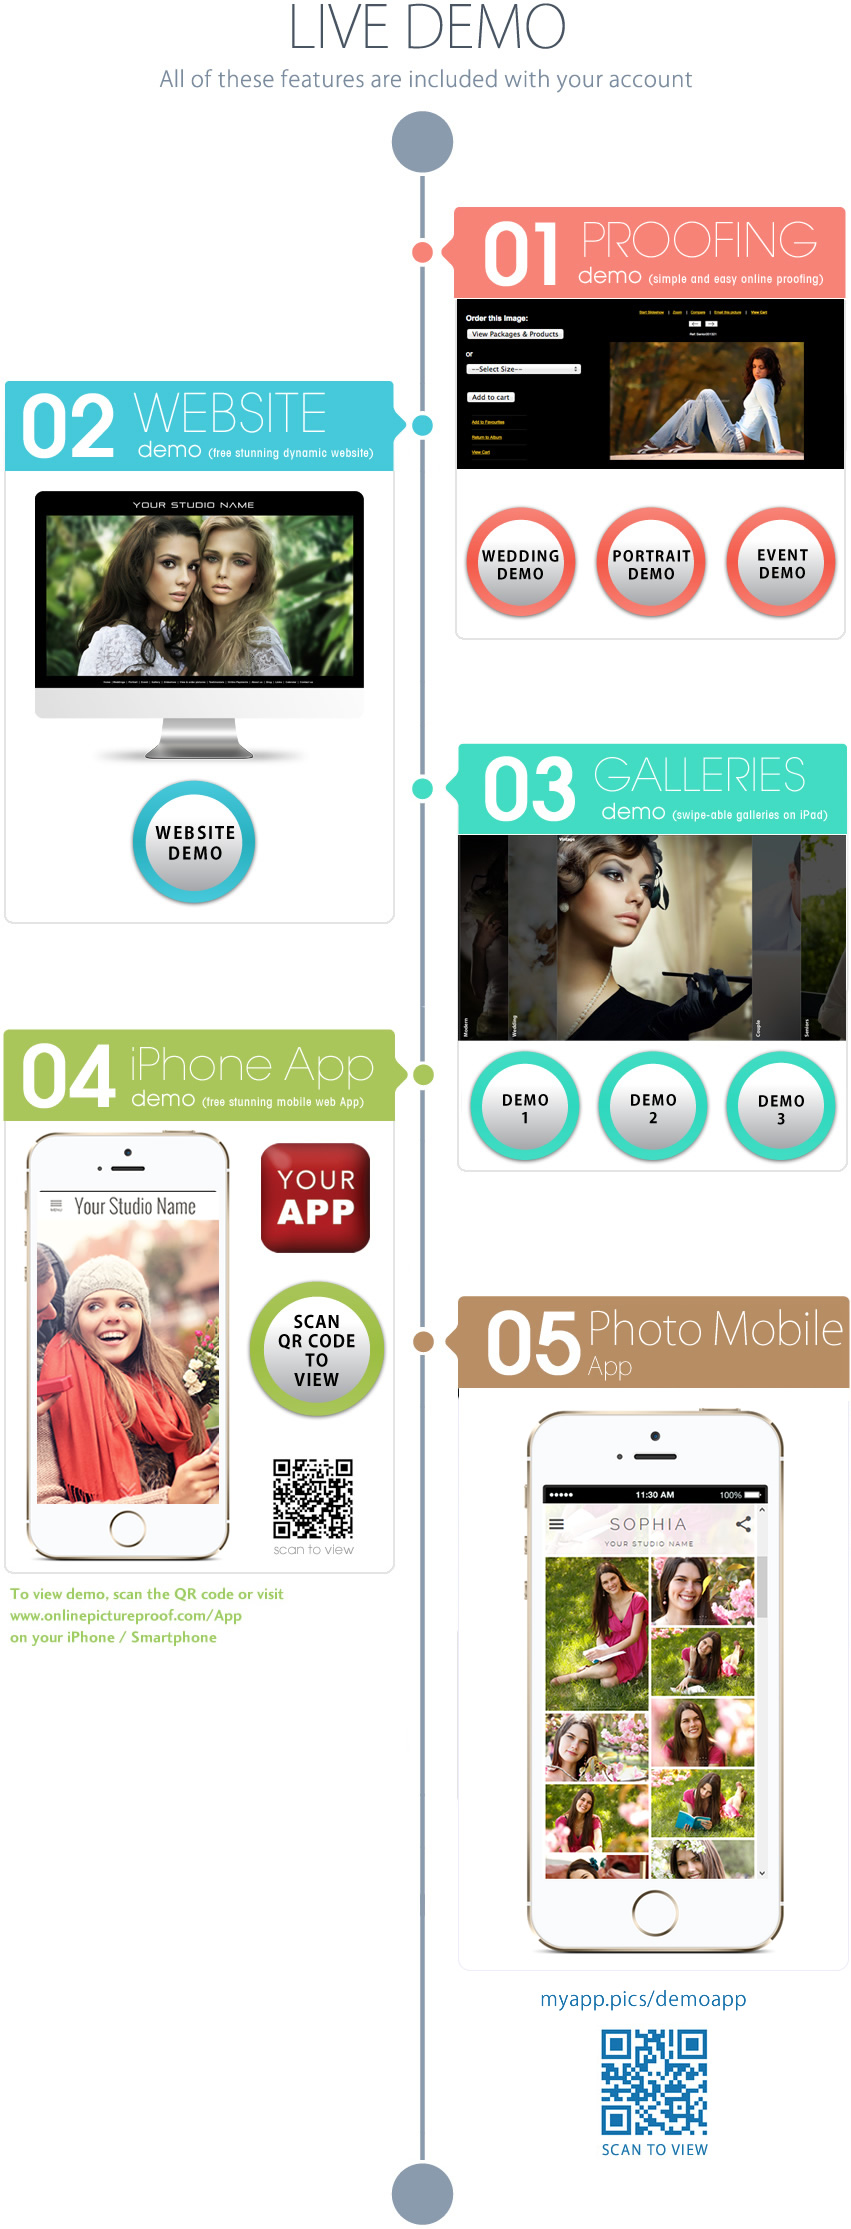 online-picture-proof-demo-website-proofing-app-slideshow-facebook-app-features